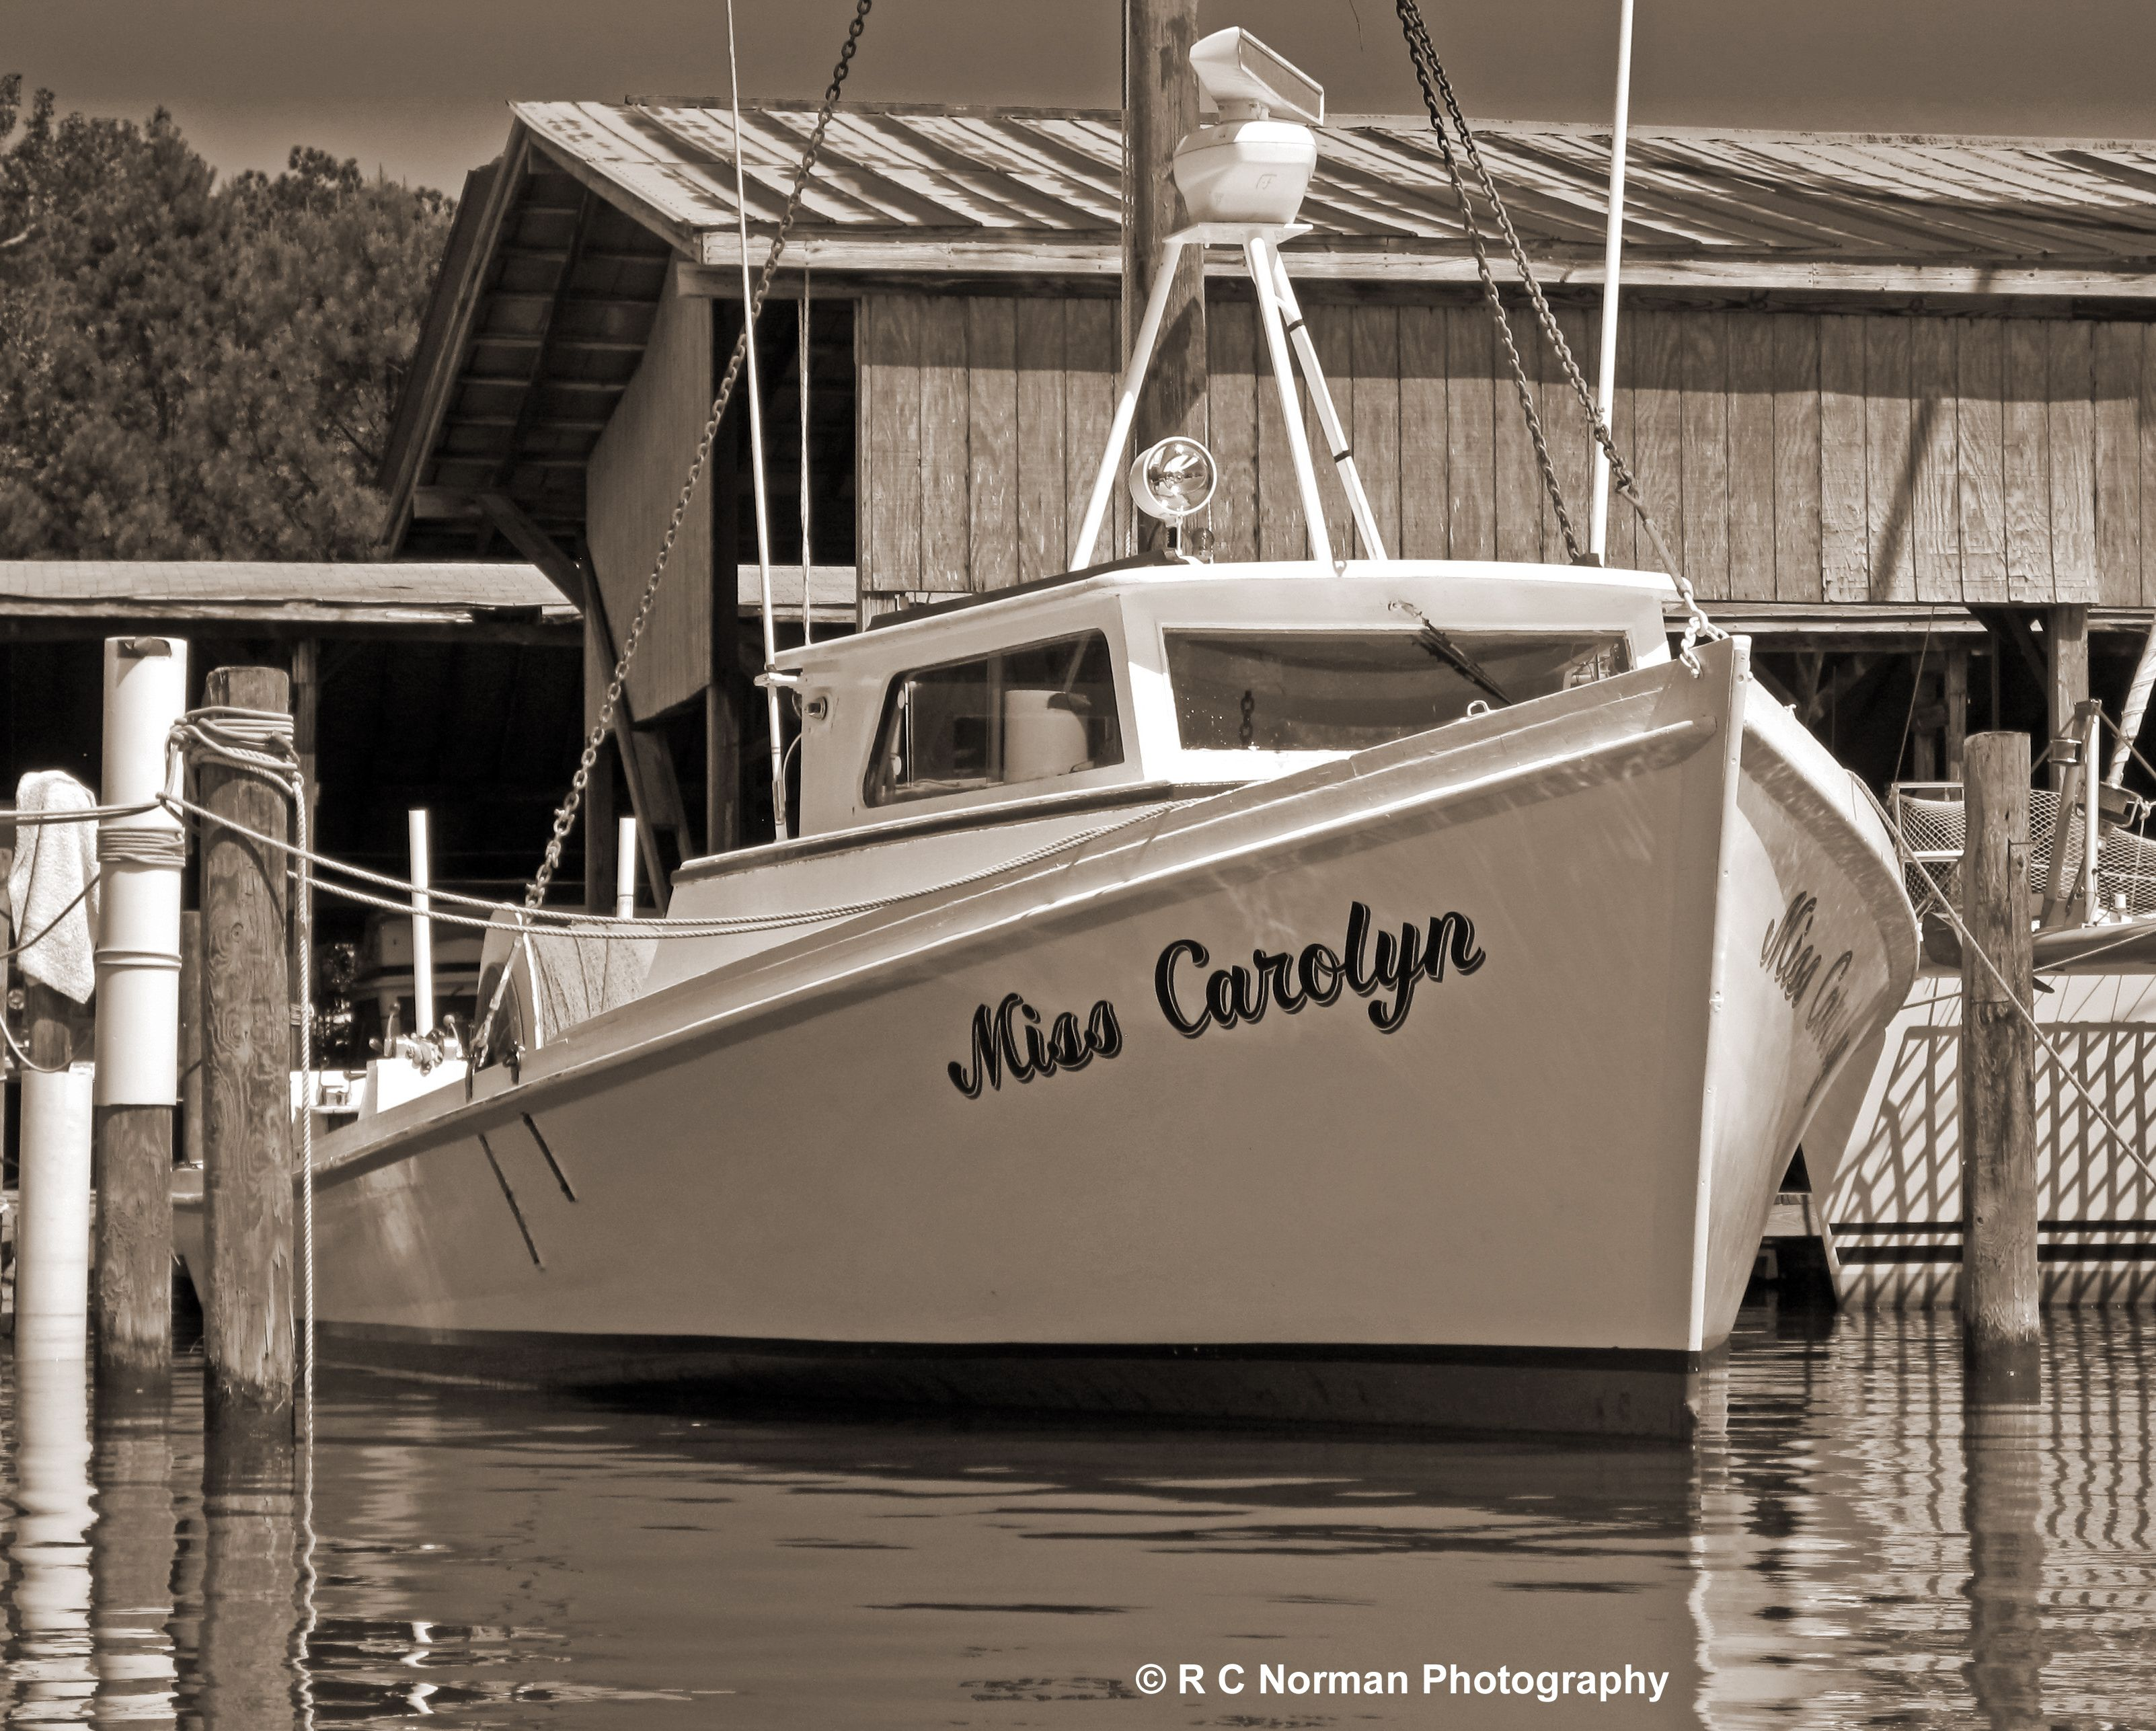 the old deadrise work boats the miss carolyn is a beauty and i